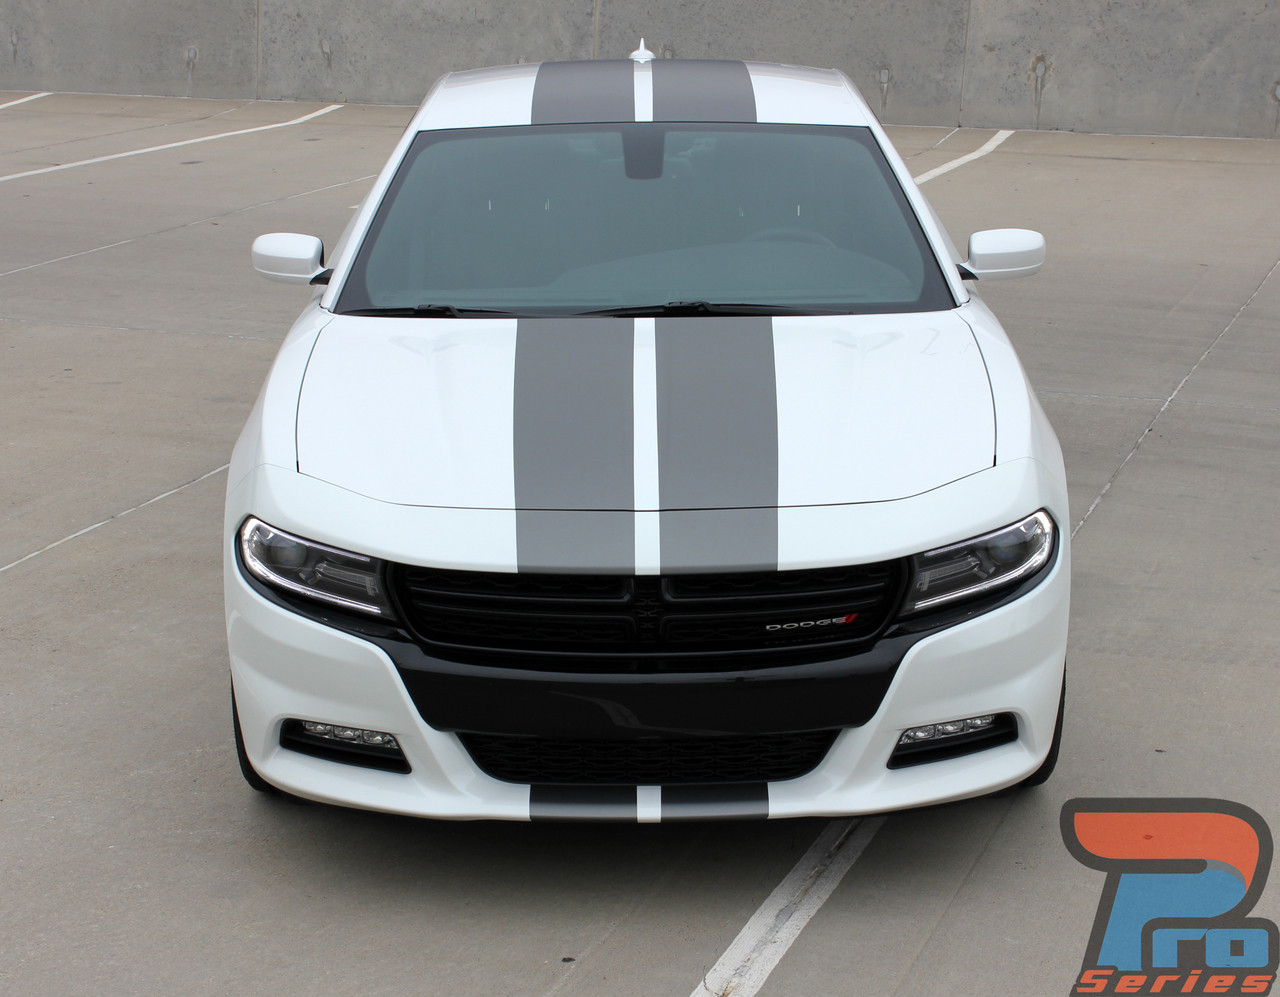 Dodge Charger Racing Stripes N Charge 15 3m 2015 2018 2019 2020 2021